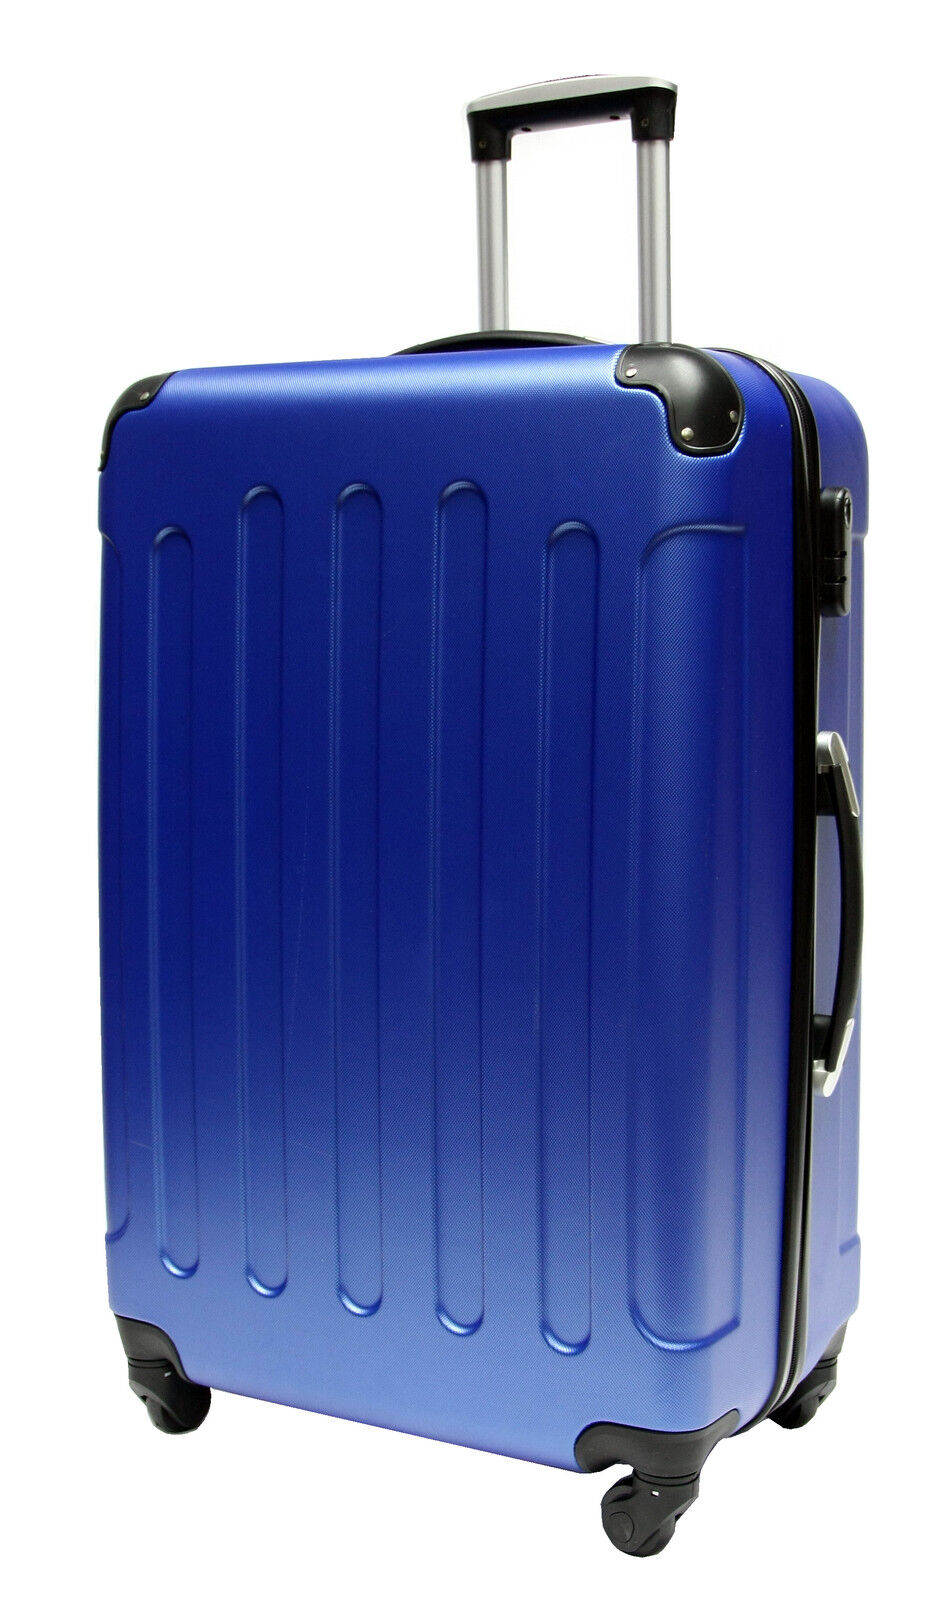 hard shell suitcase 4 wheel spinner luggage trolley cabin. Black Bedroom Furniture Sets. Home Design Ideas